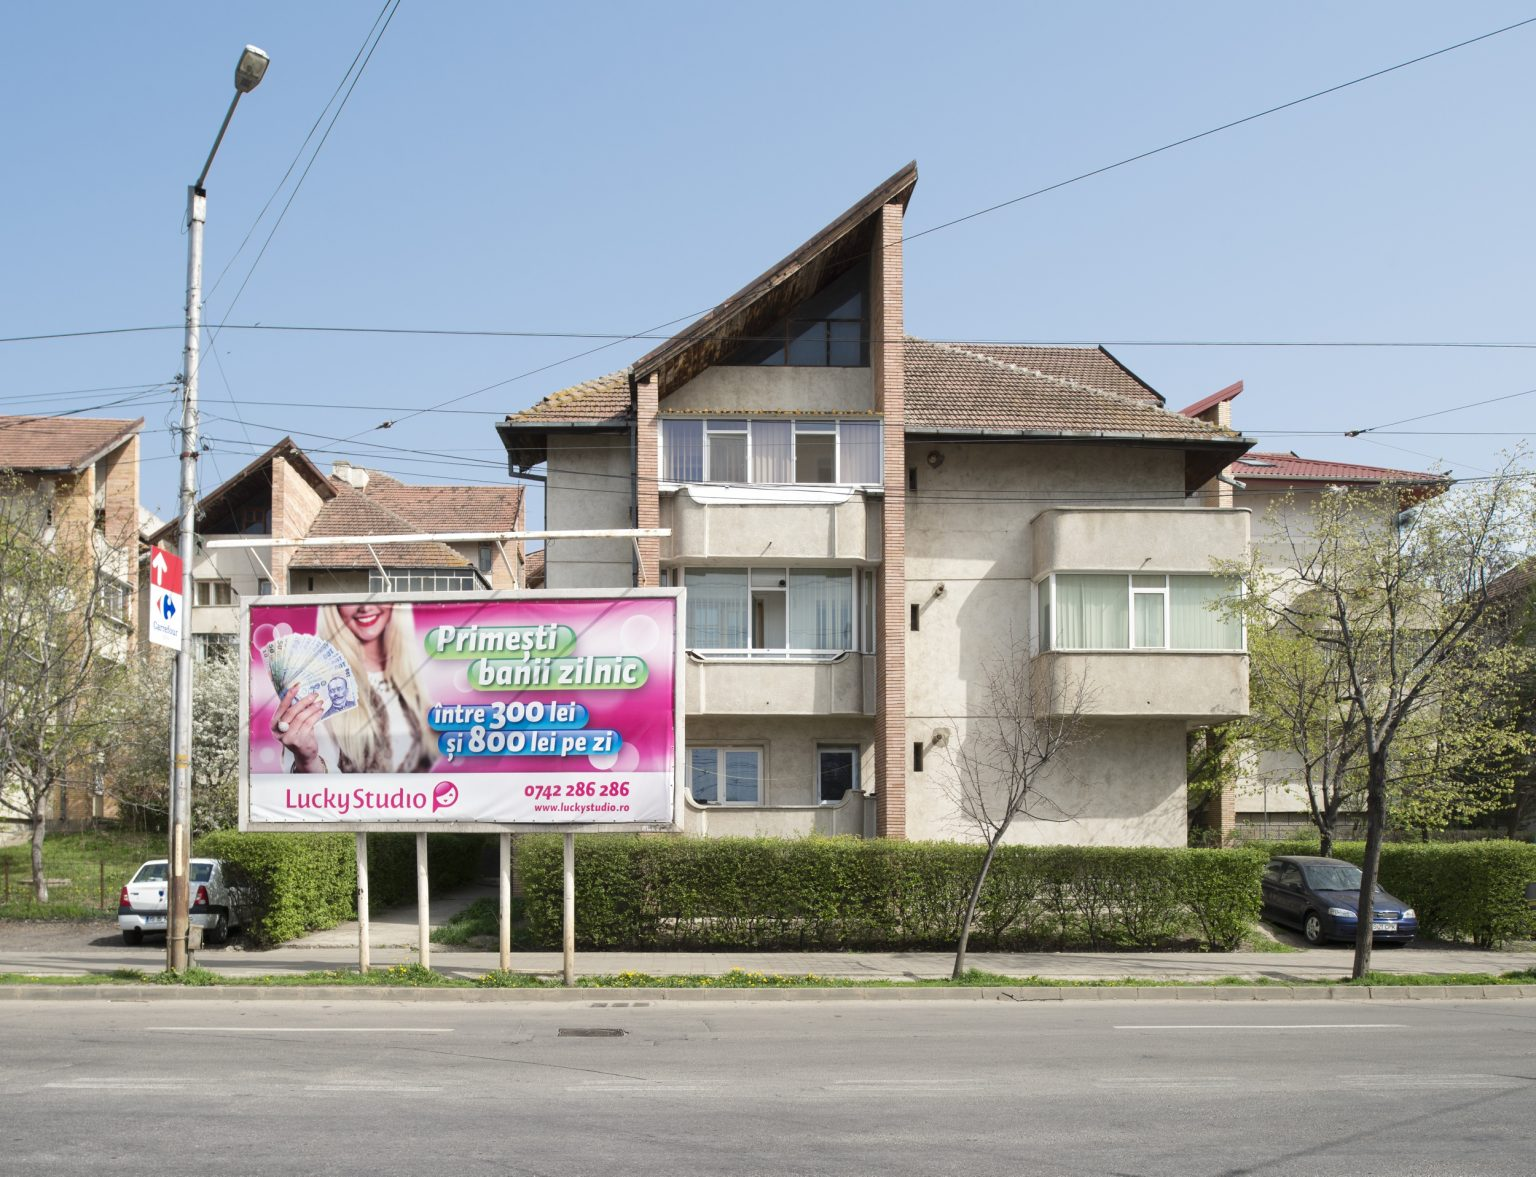 An advertisement billboard in a street of the city promising daily earnings for the cam models between 300 and 800 RON (approx. between 66 and 178 euros). Iași, Romania, 2016